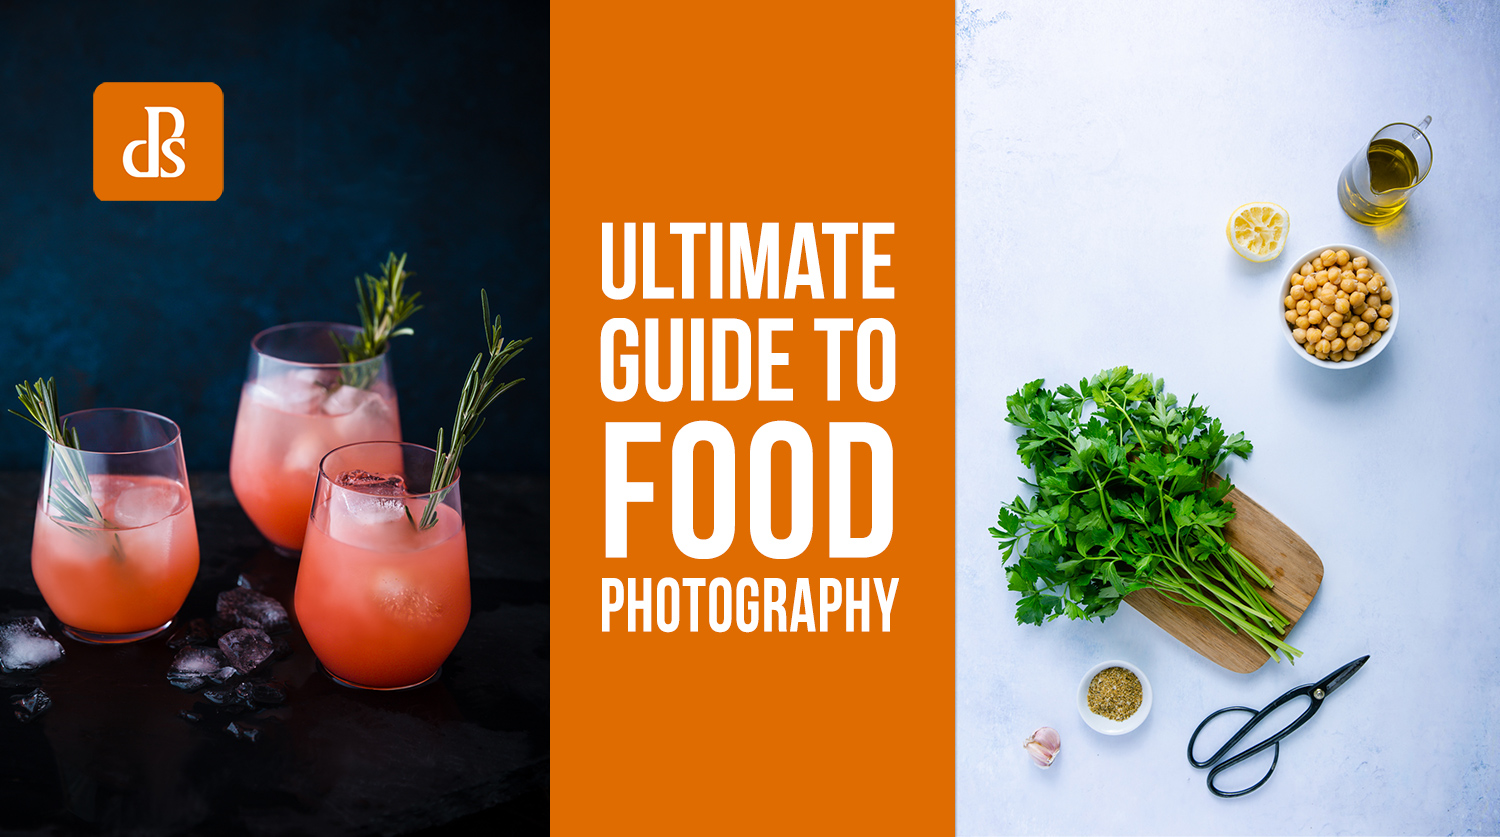 QnA VBage The dPS Ultimate Guide to Food Photography